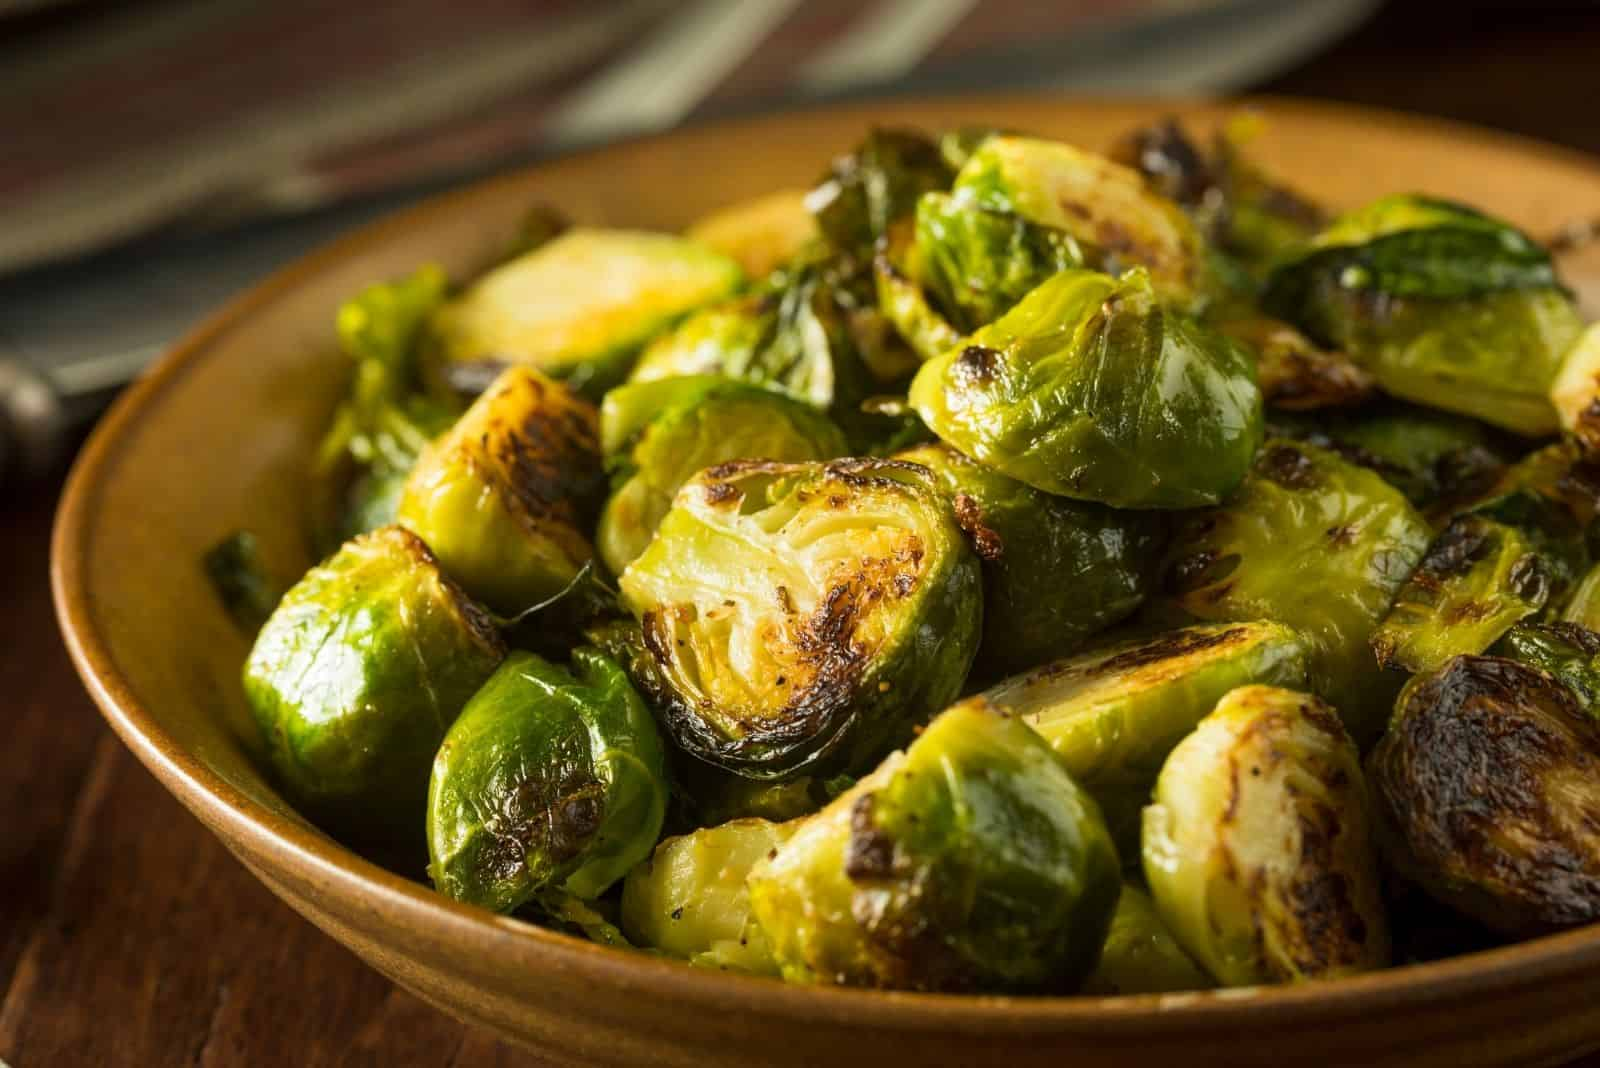 homemade roasted green brussel sprouts placed in a wooden plate